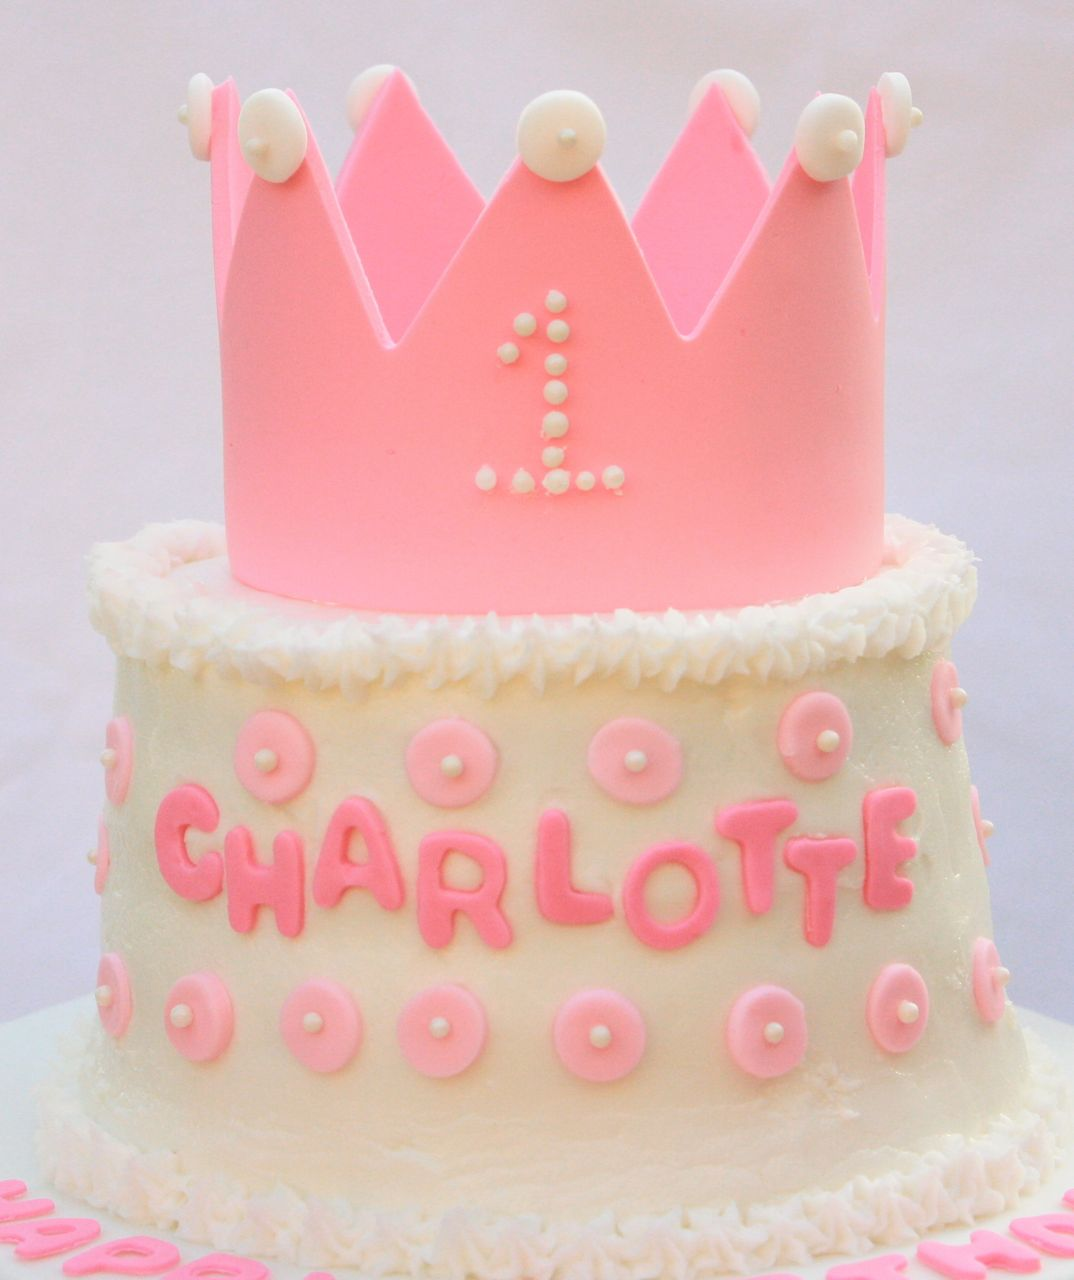 Cakealicious Surprises: First Birthday Cake - Princess Theme